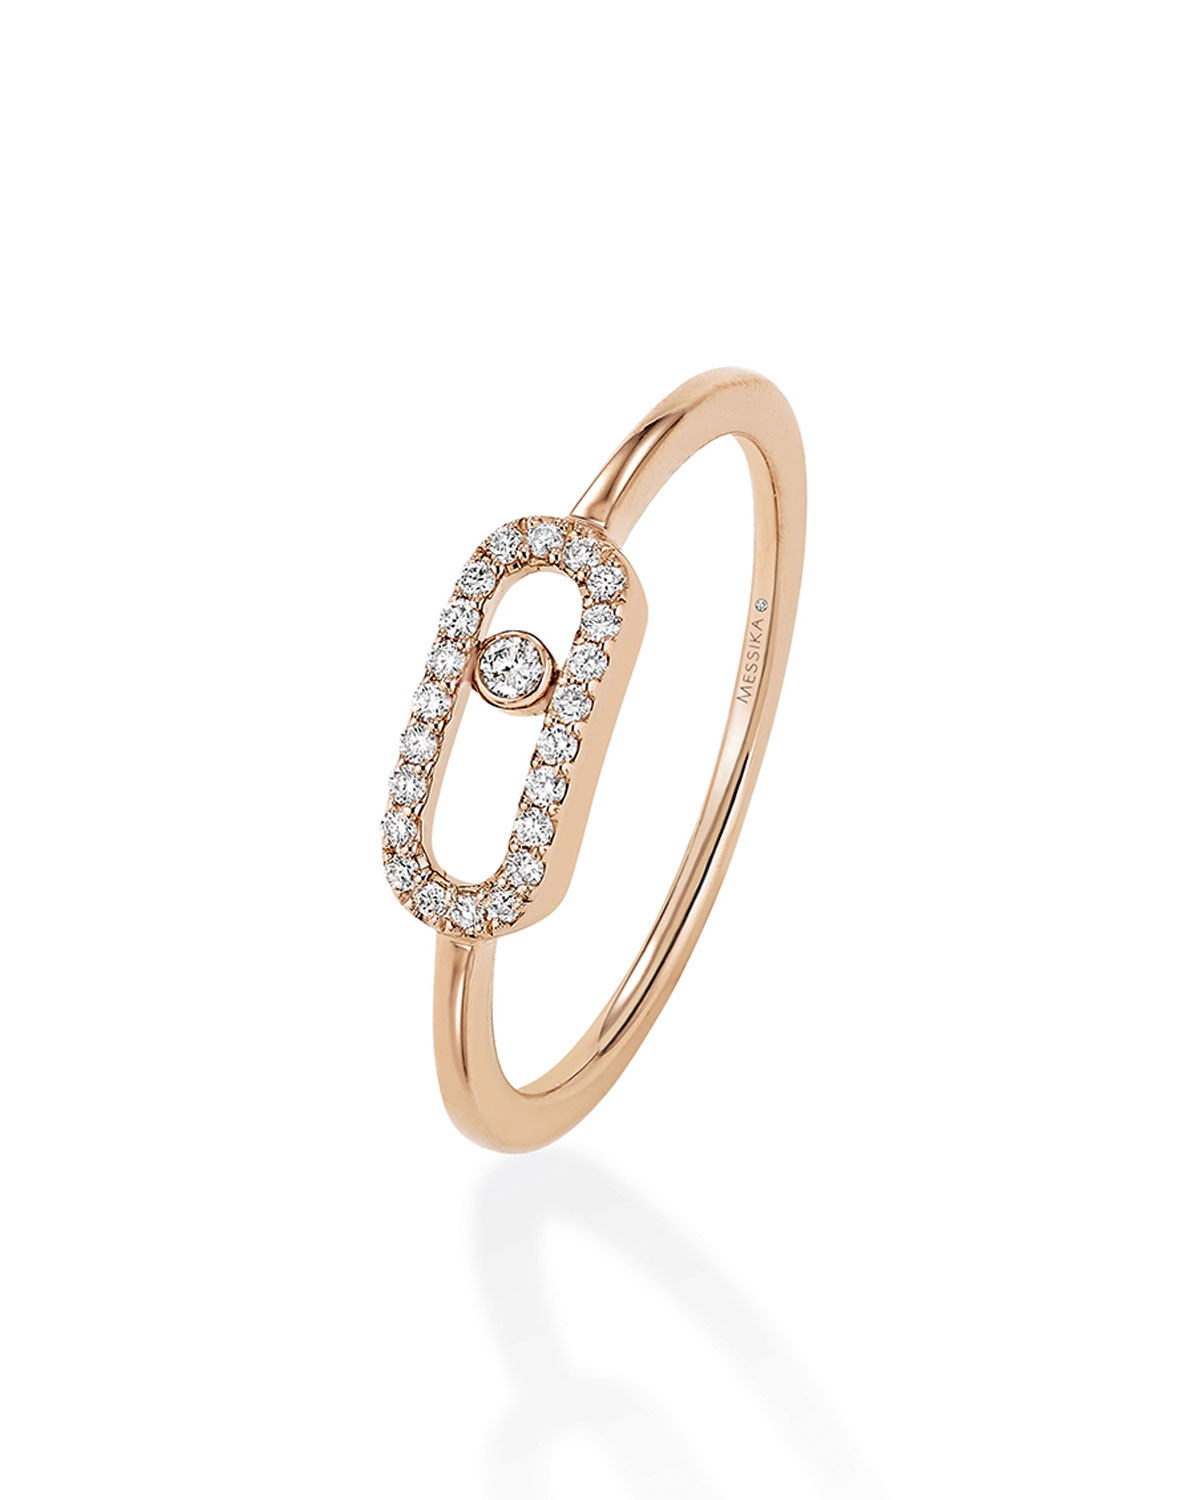 Move Uno Diamond Ring in 18k Pink Gold